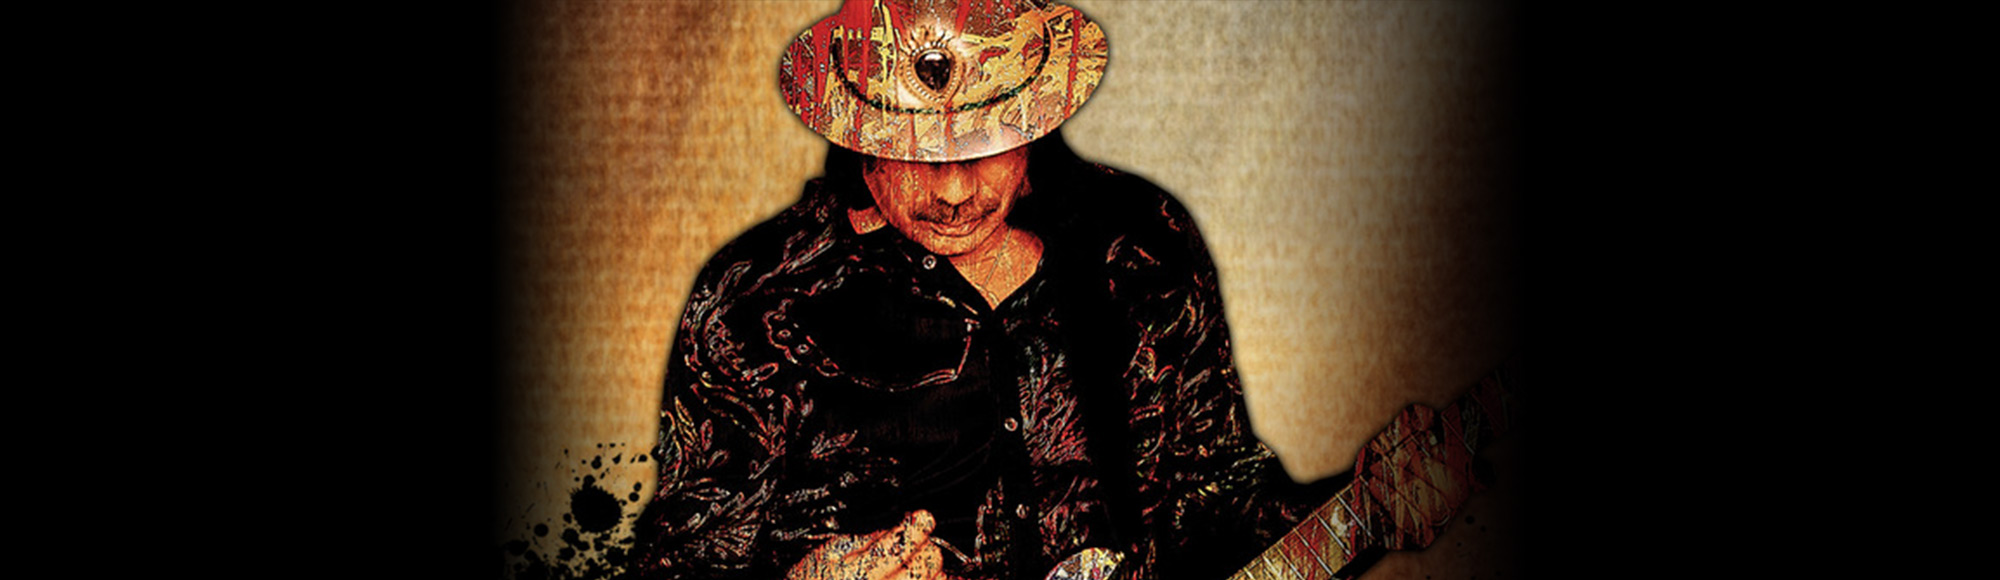 An Intimate Evening with SANTANA: Greatest Hits Live! show